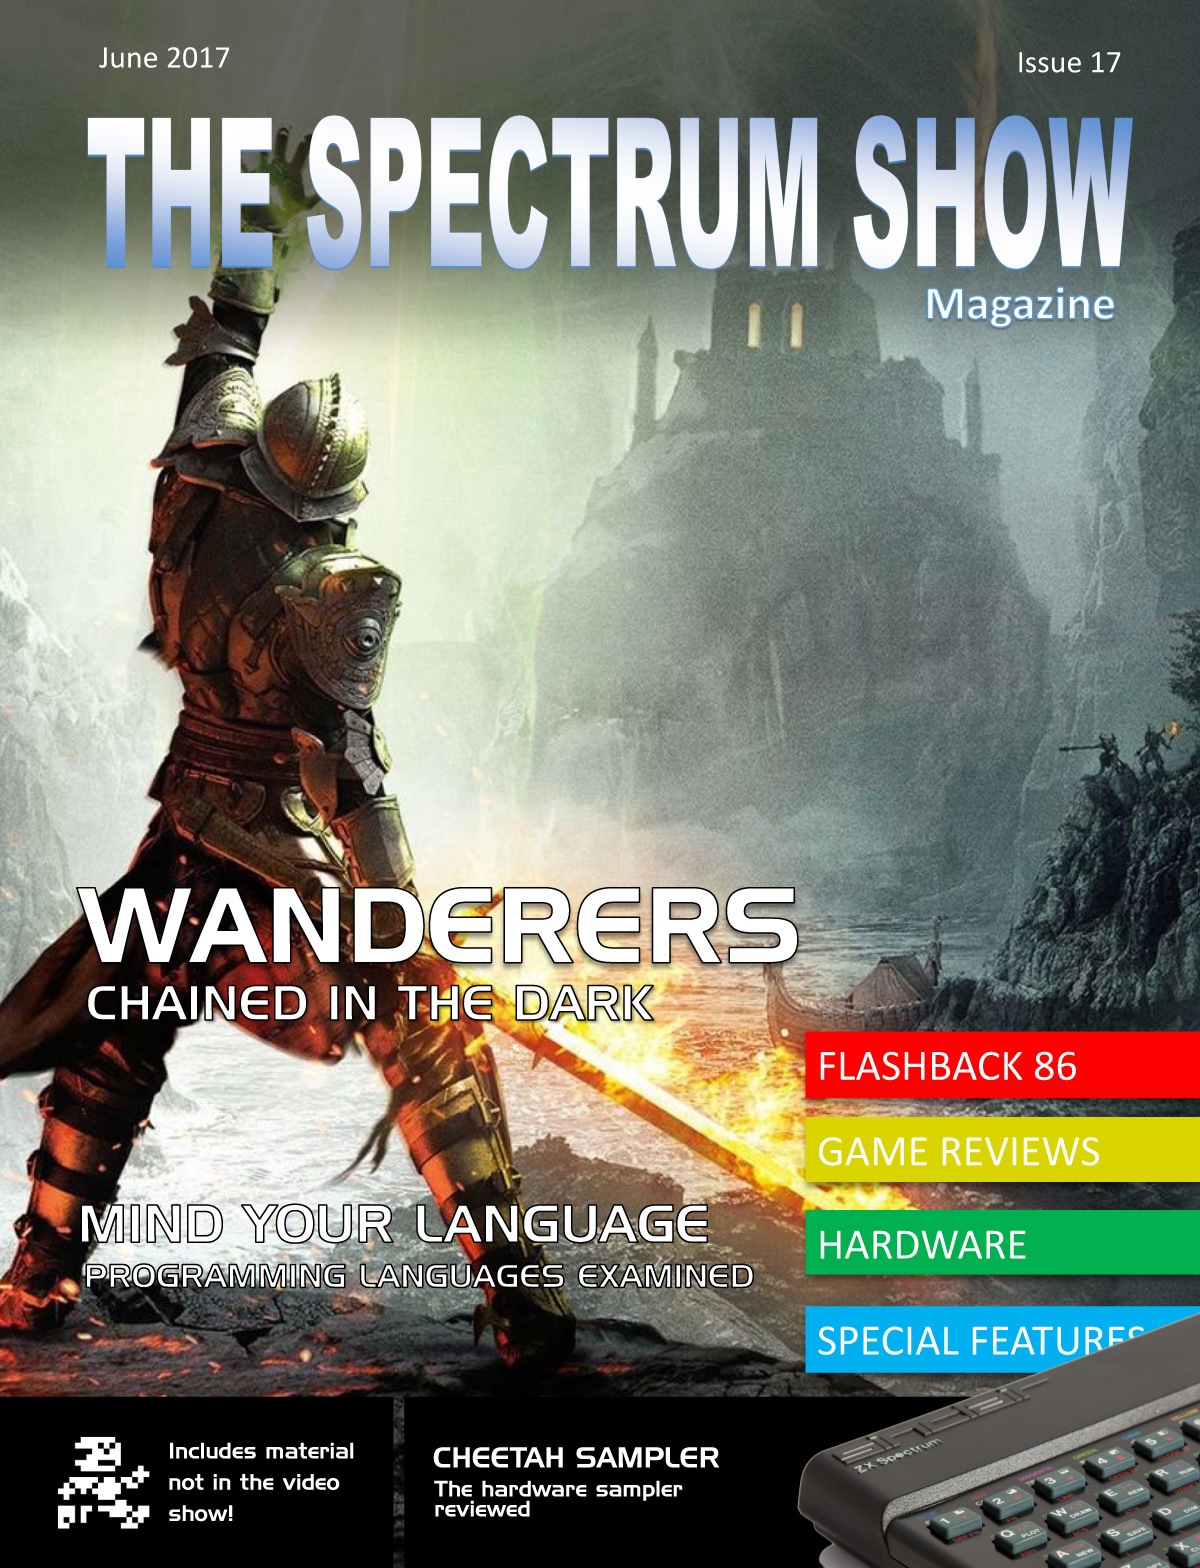 The Spectrum Show Magazine no 17